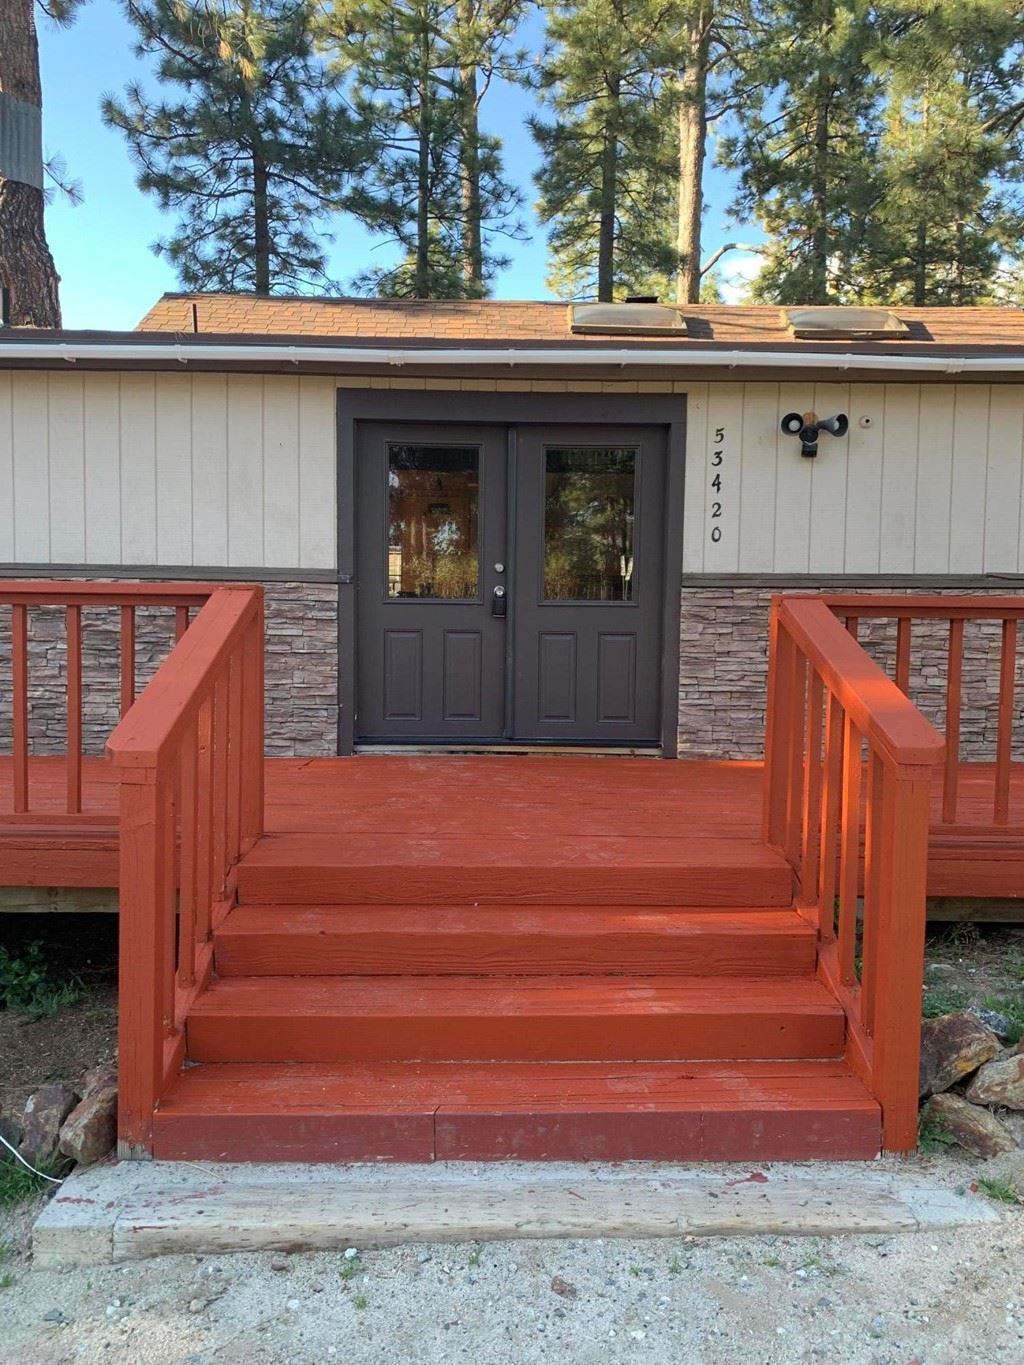 53420 Double View Drive, Idyllwild, CA 92549 - #: 220011181